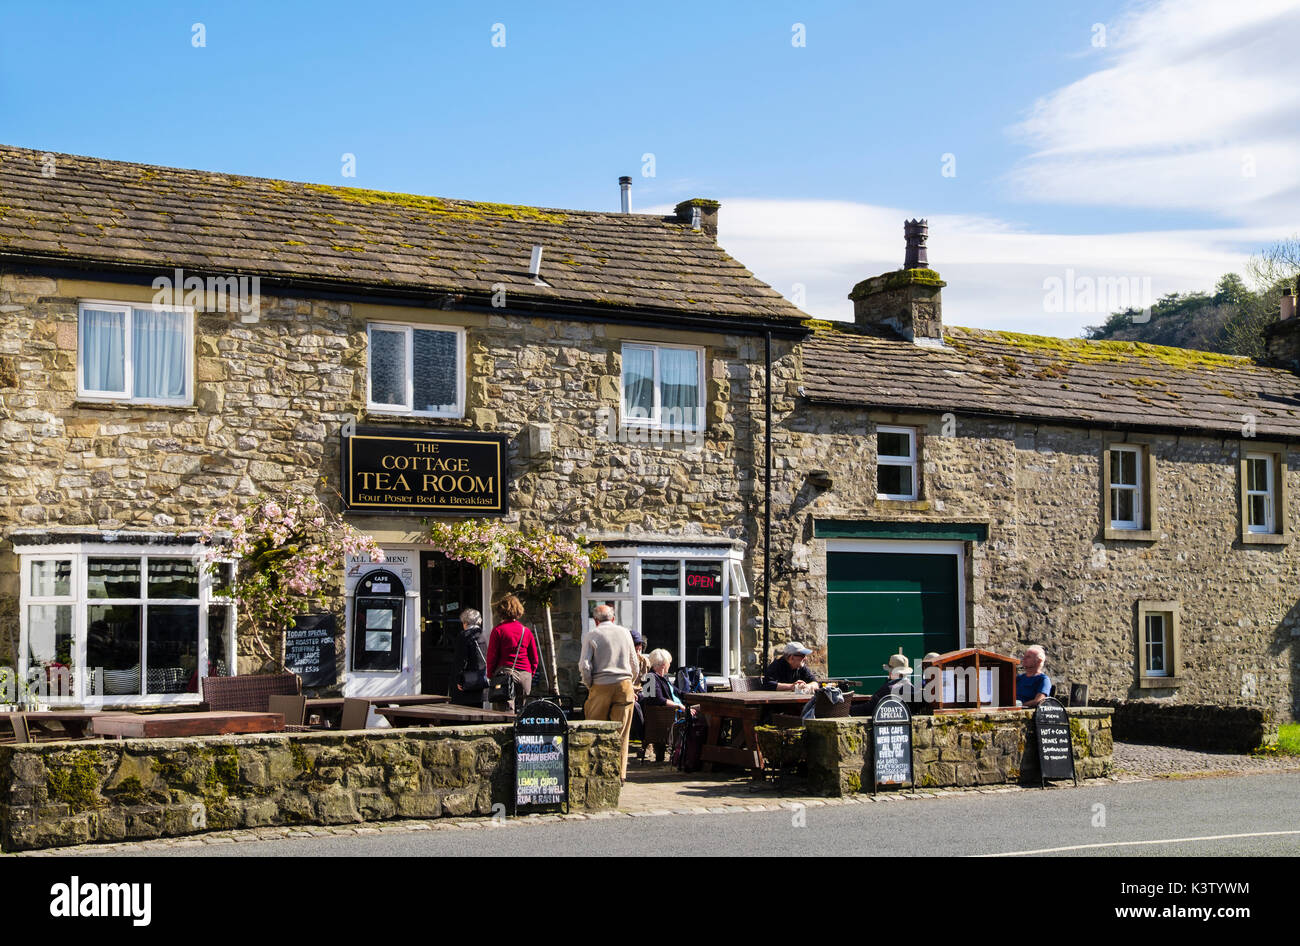 People entering The Cottage Tea Room cafe in Kettlewell, Upper Wharfedale, Yorkshire Dales National Park, North Yorkshire, England, UK, Britain - Stock Image